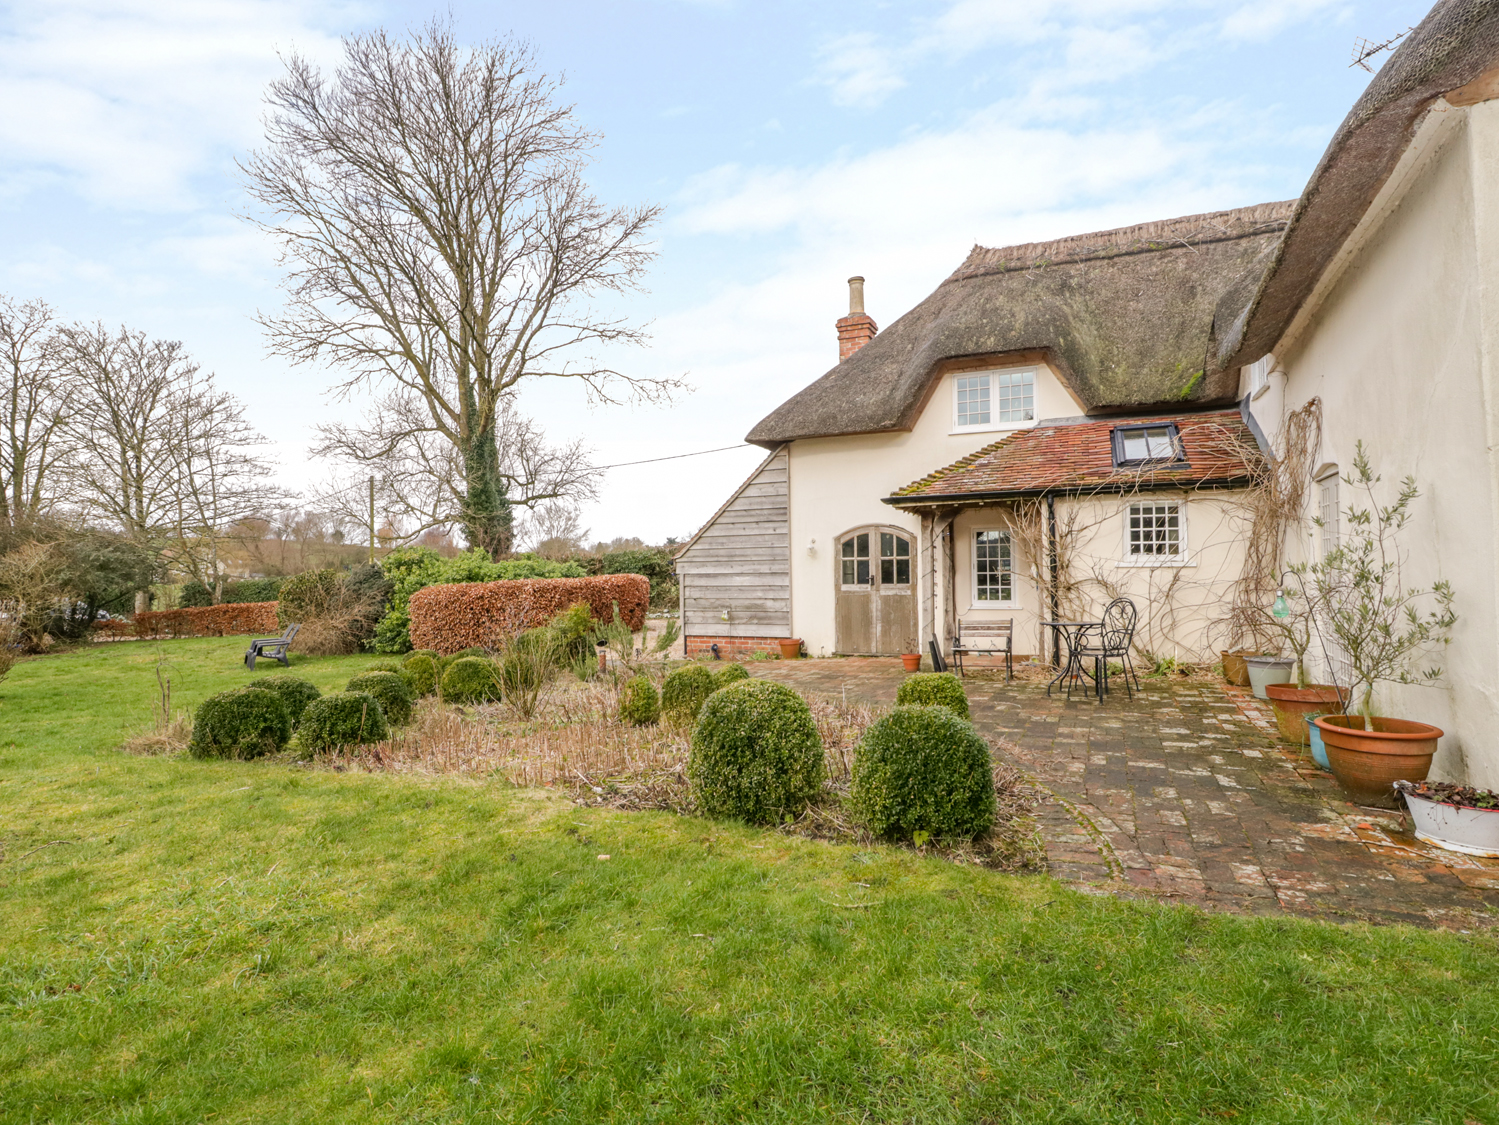 5 bedroom Cottage for rent in Blandford Forum